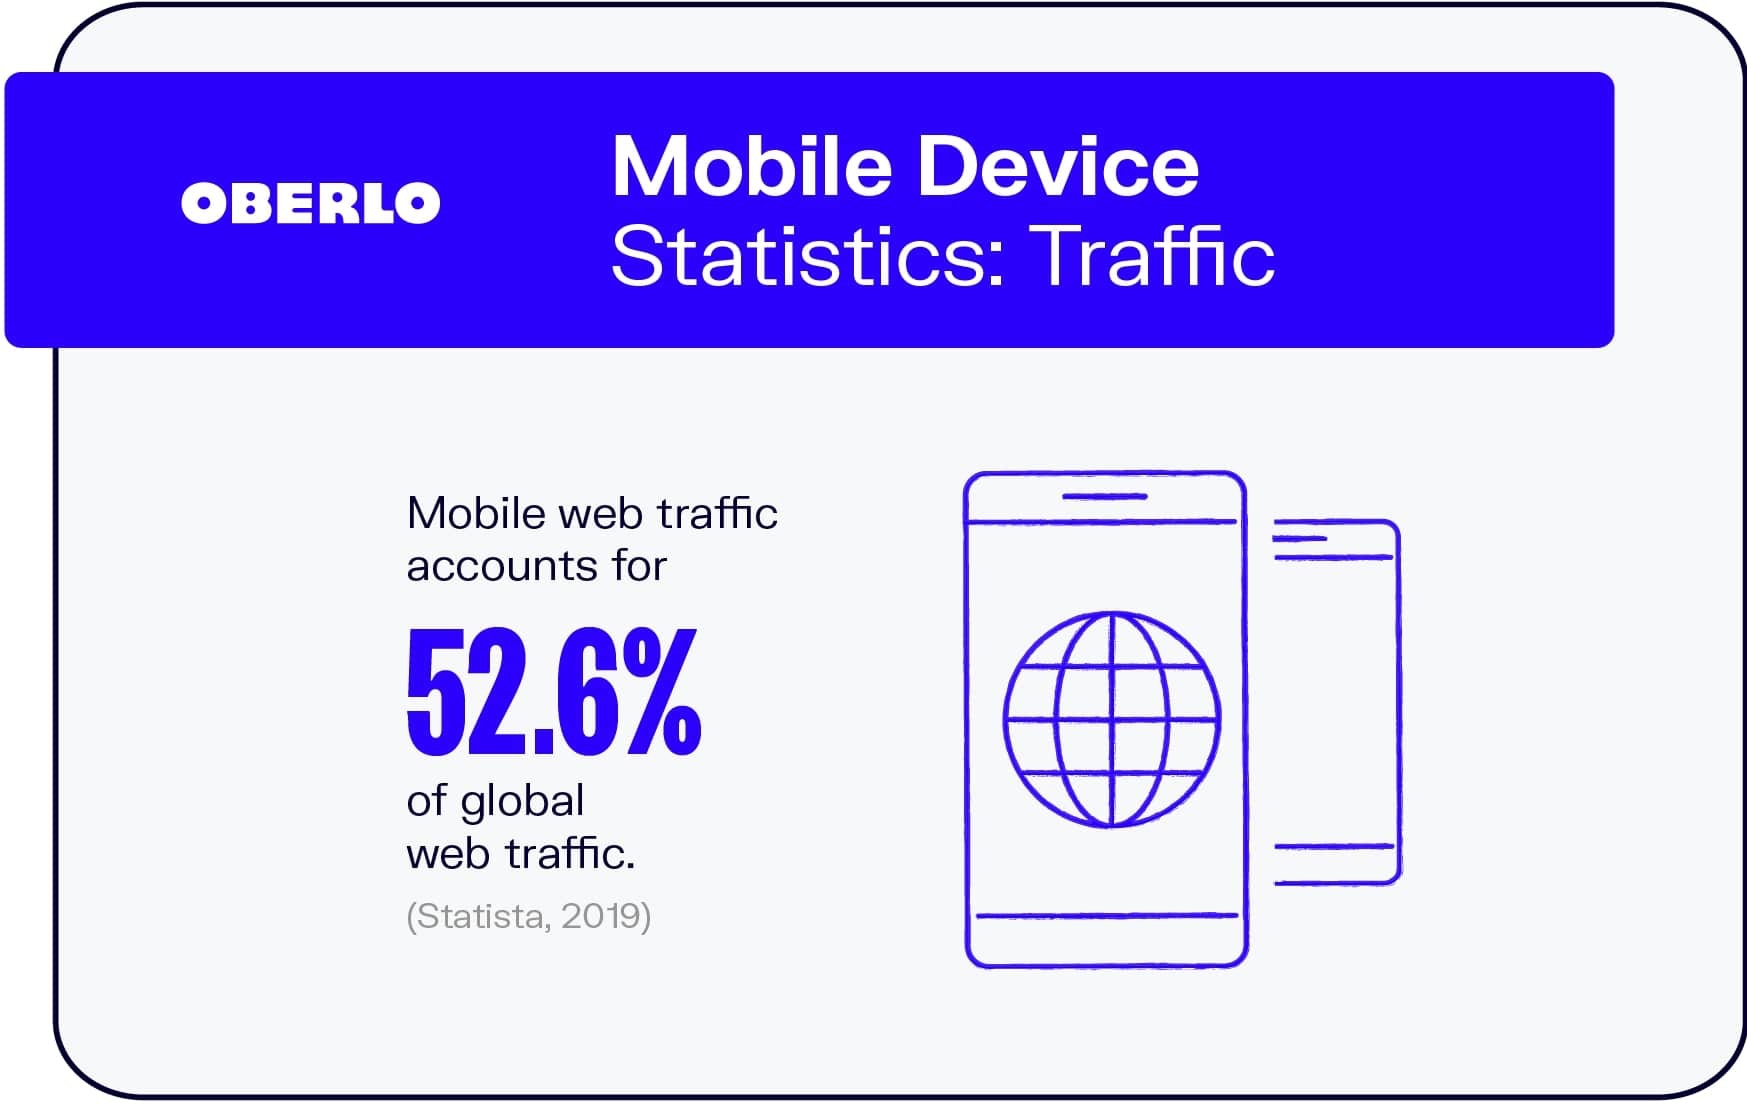 Mobile Device Statistics: Traffic